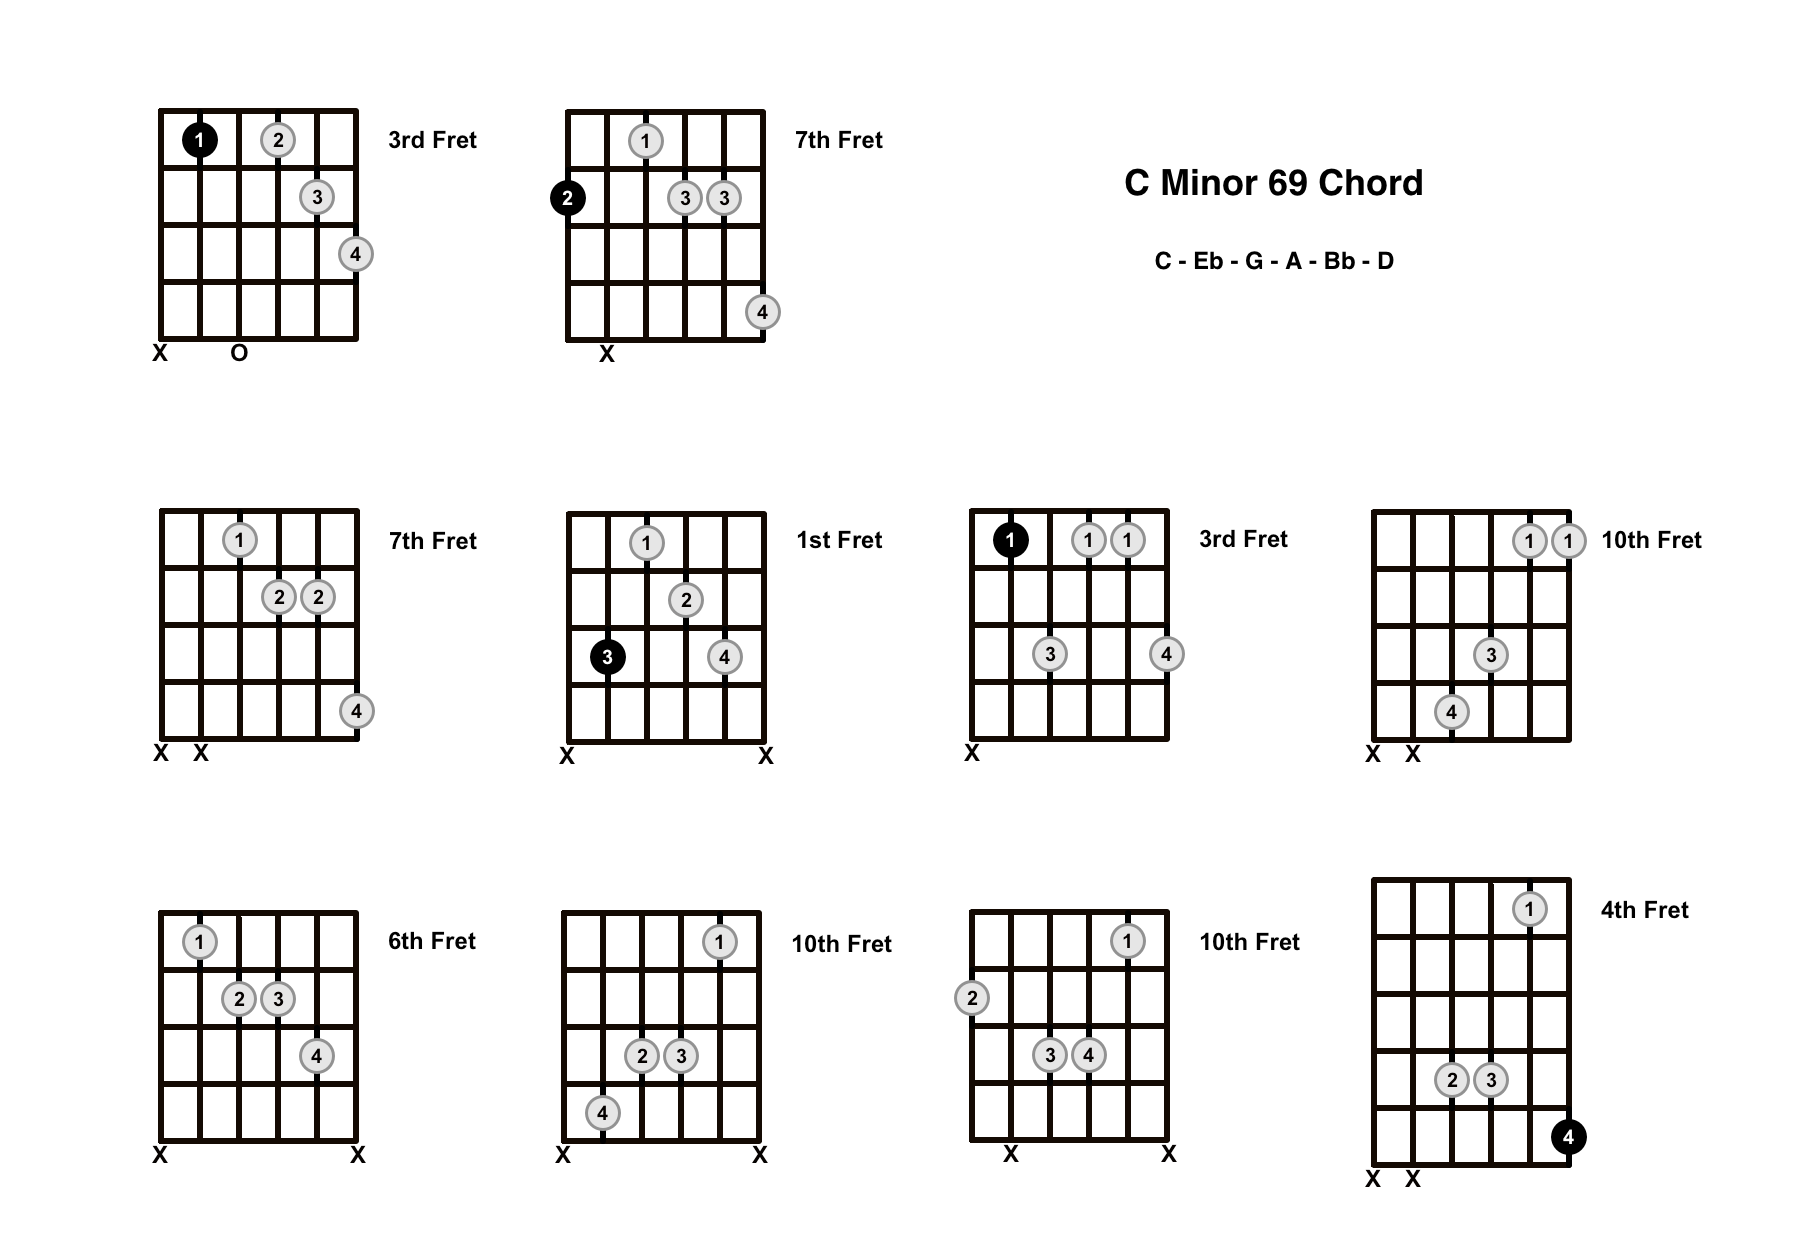 Cm69 Chord On The Guitar (C Minor 69) – Diagrams, Finger Positions and Theory